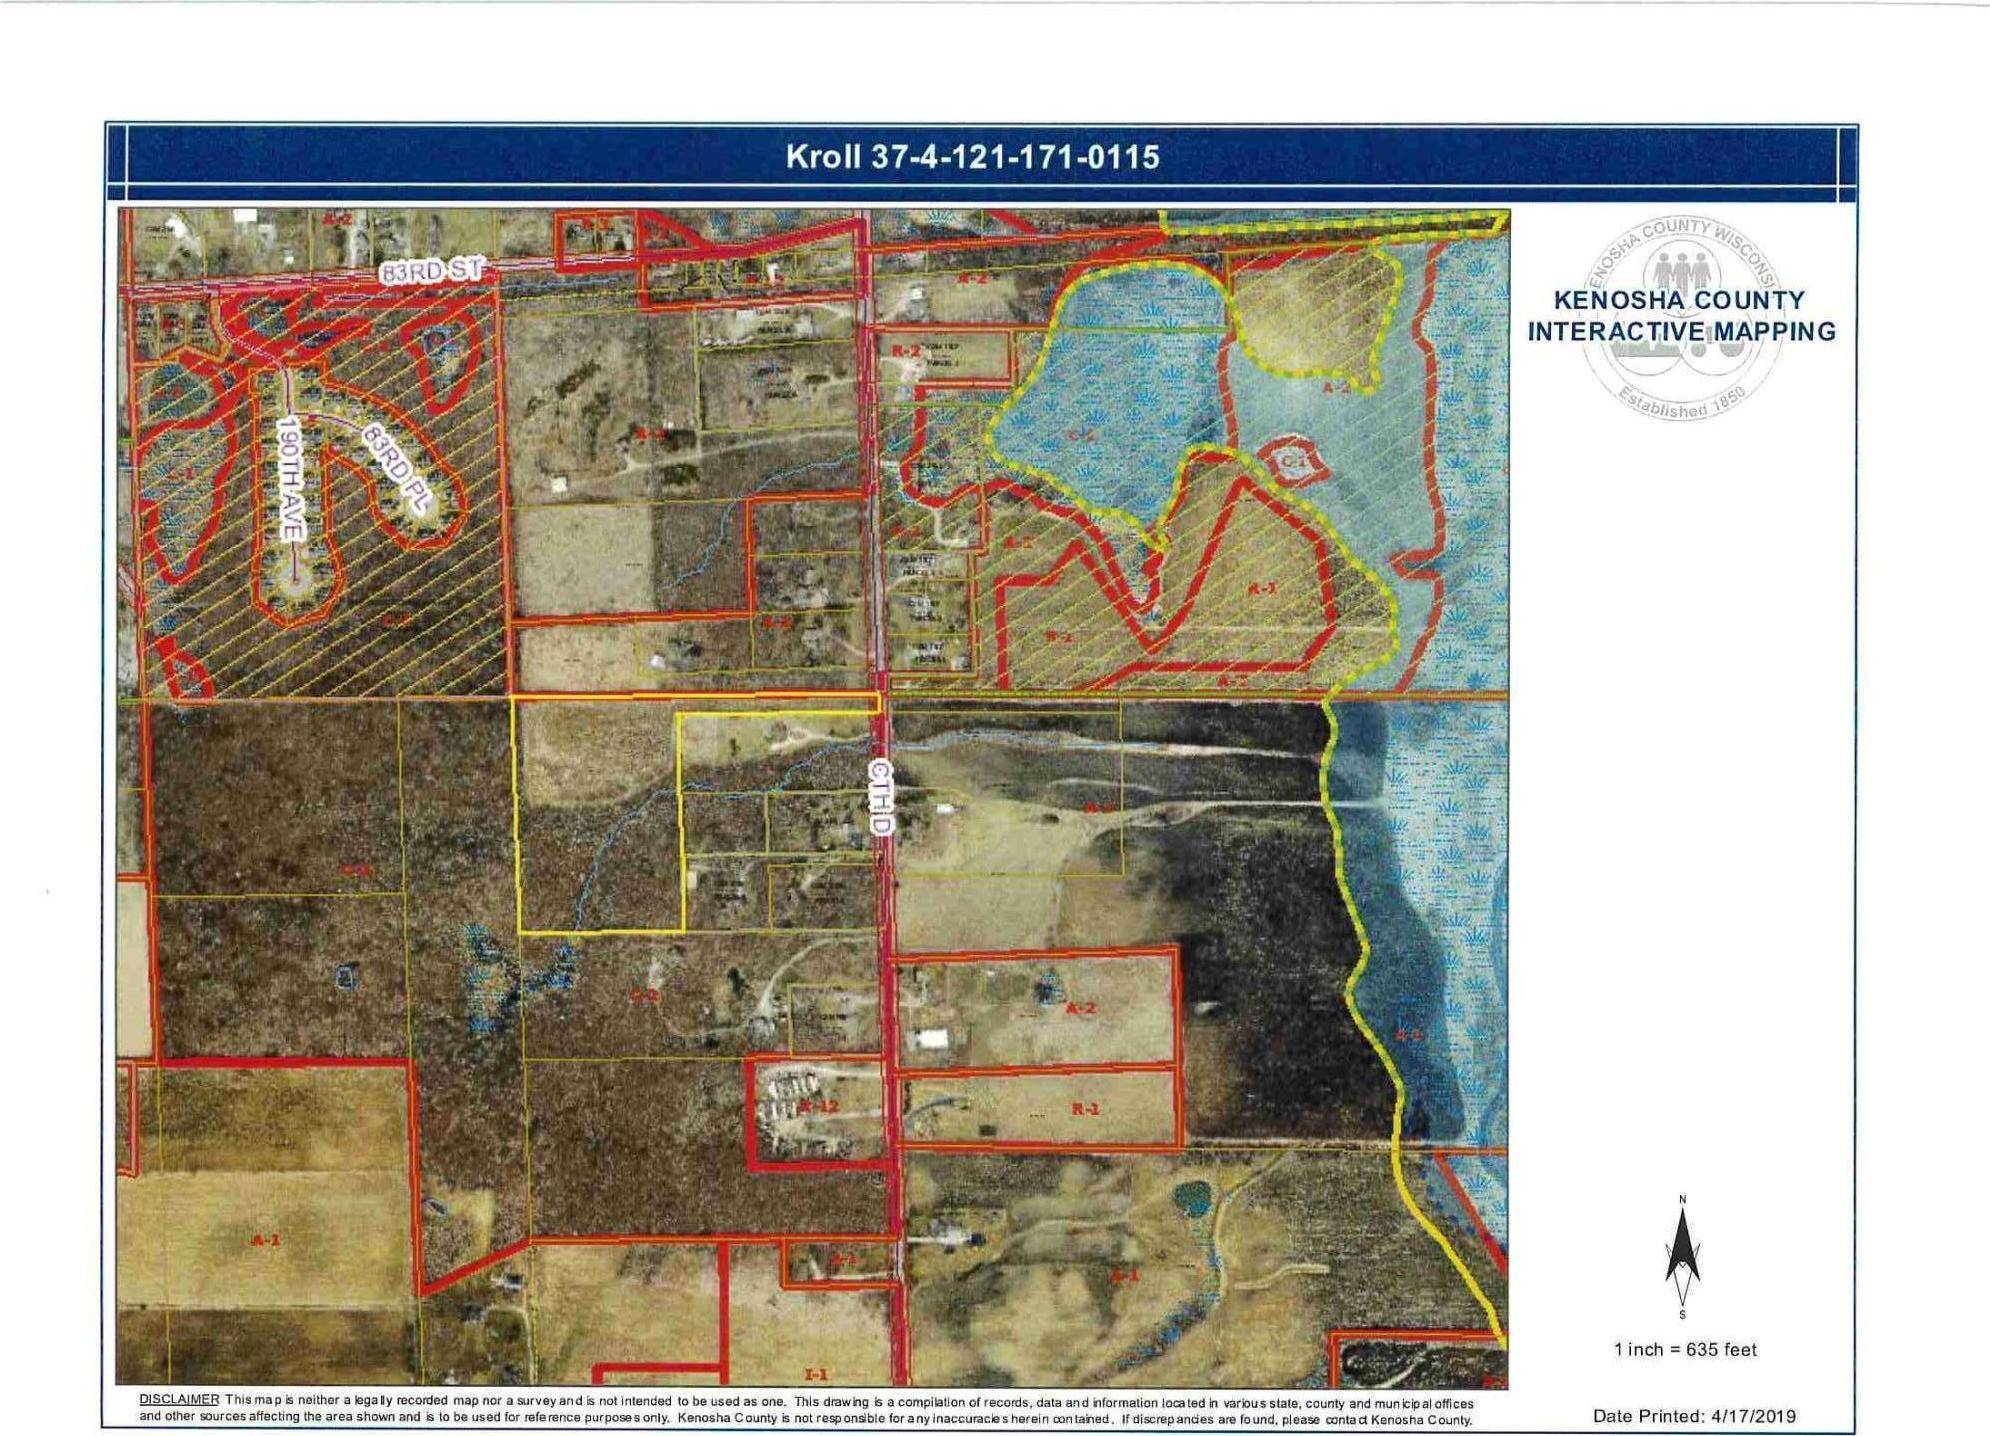 MLS #1633224 - 0 184Th Ave Bristol, WI 53104 on albany state map, green state map, iowa state map, oakland state map, arlington state map, corpus christi state map, oshkosh state map, galveston state map, billings state map, rochester state map, scranton state map, harvard state map, dayton state map, montgomery state map, lake county state map, tulsa state map, peoria state map, spokane state map, aurora state map, allentown state map,